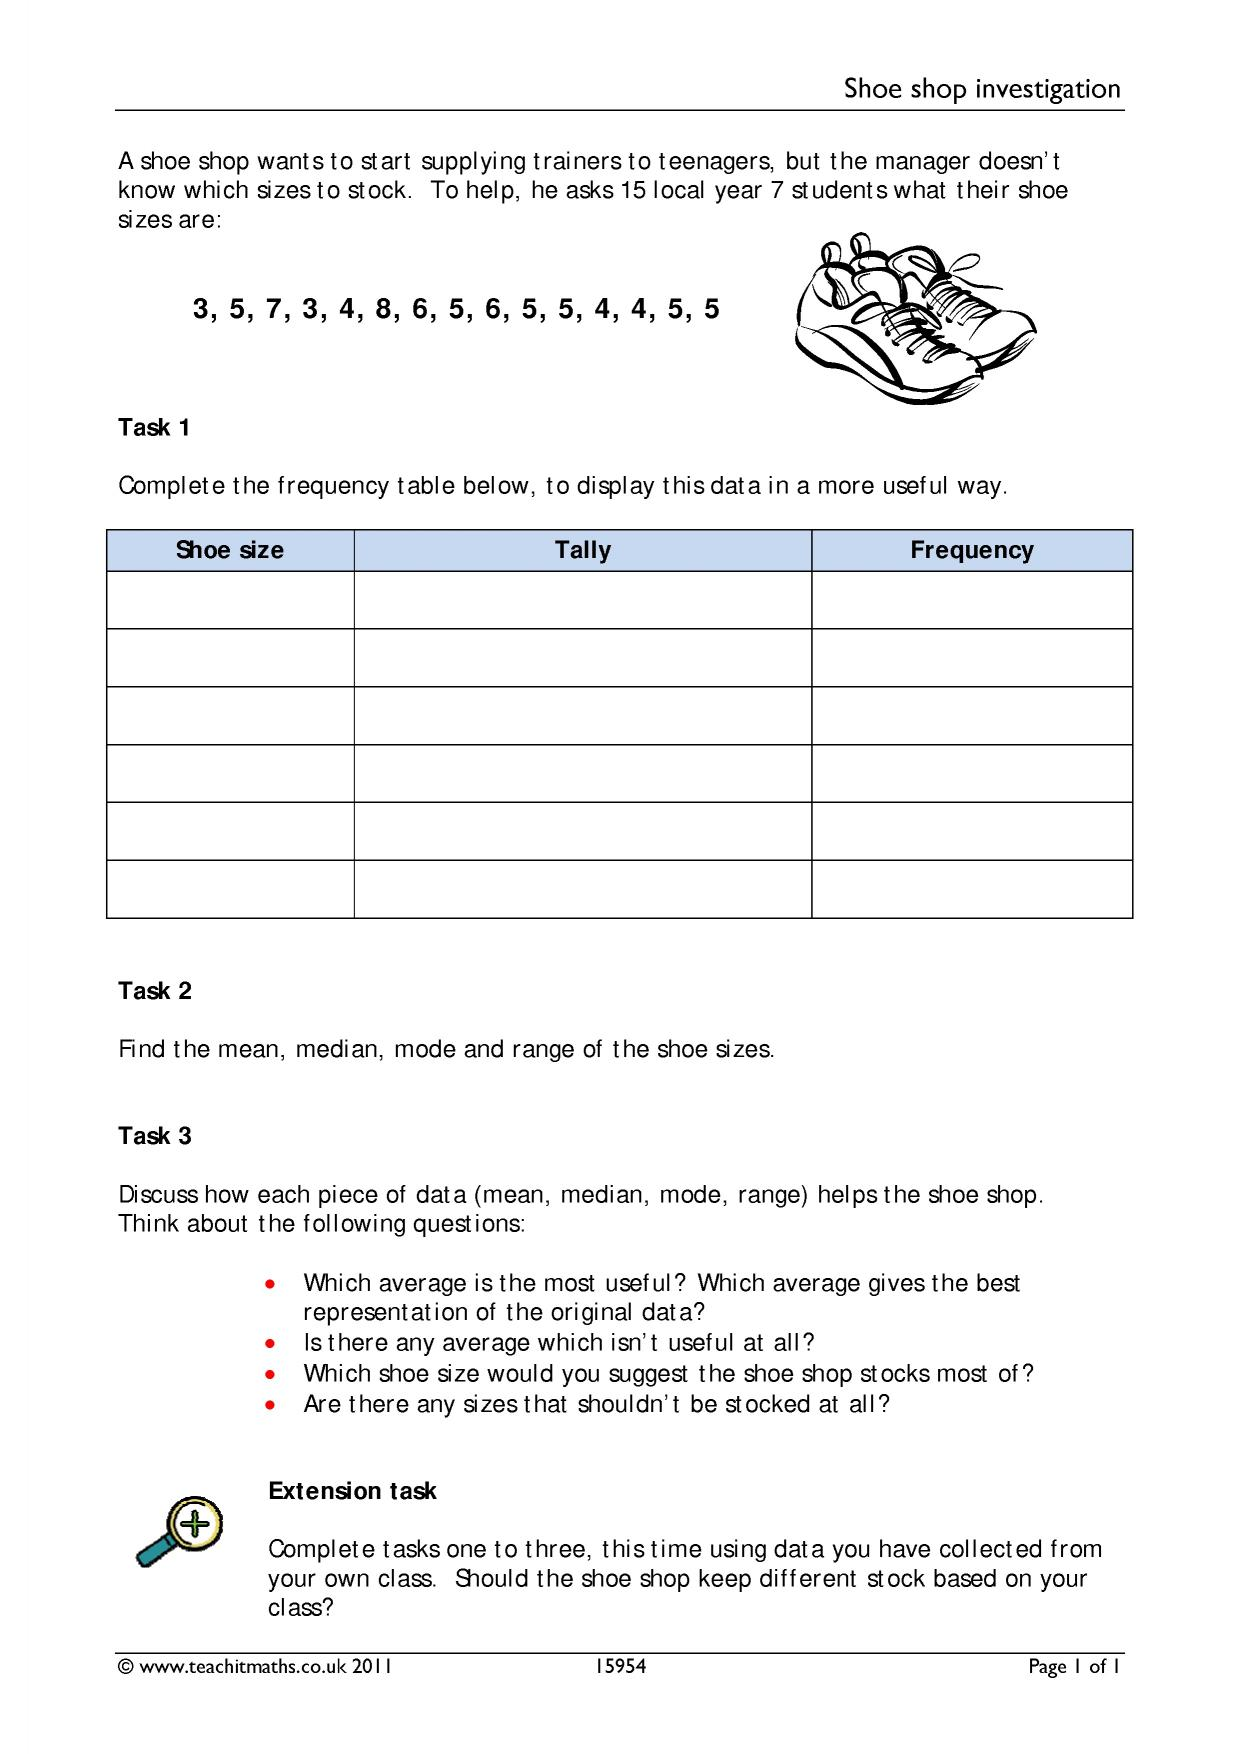 hight resolution of Mean Median Mode Rnage Worksheets   Printable Worksheets and Activities for  Teachers